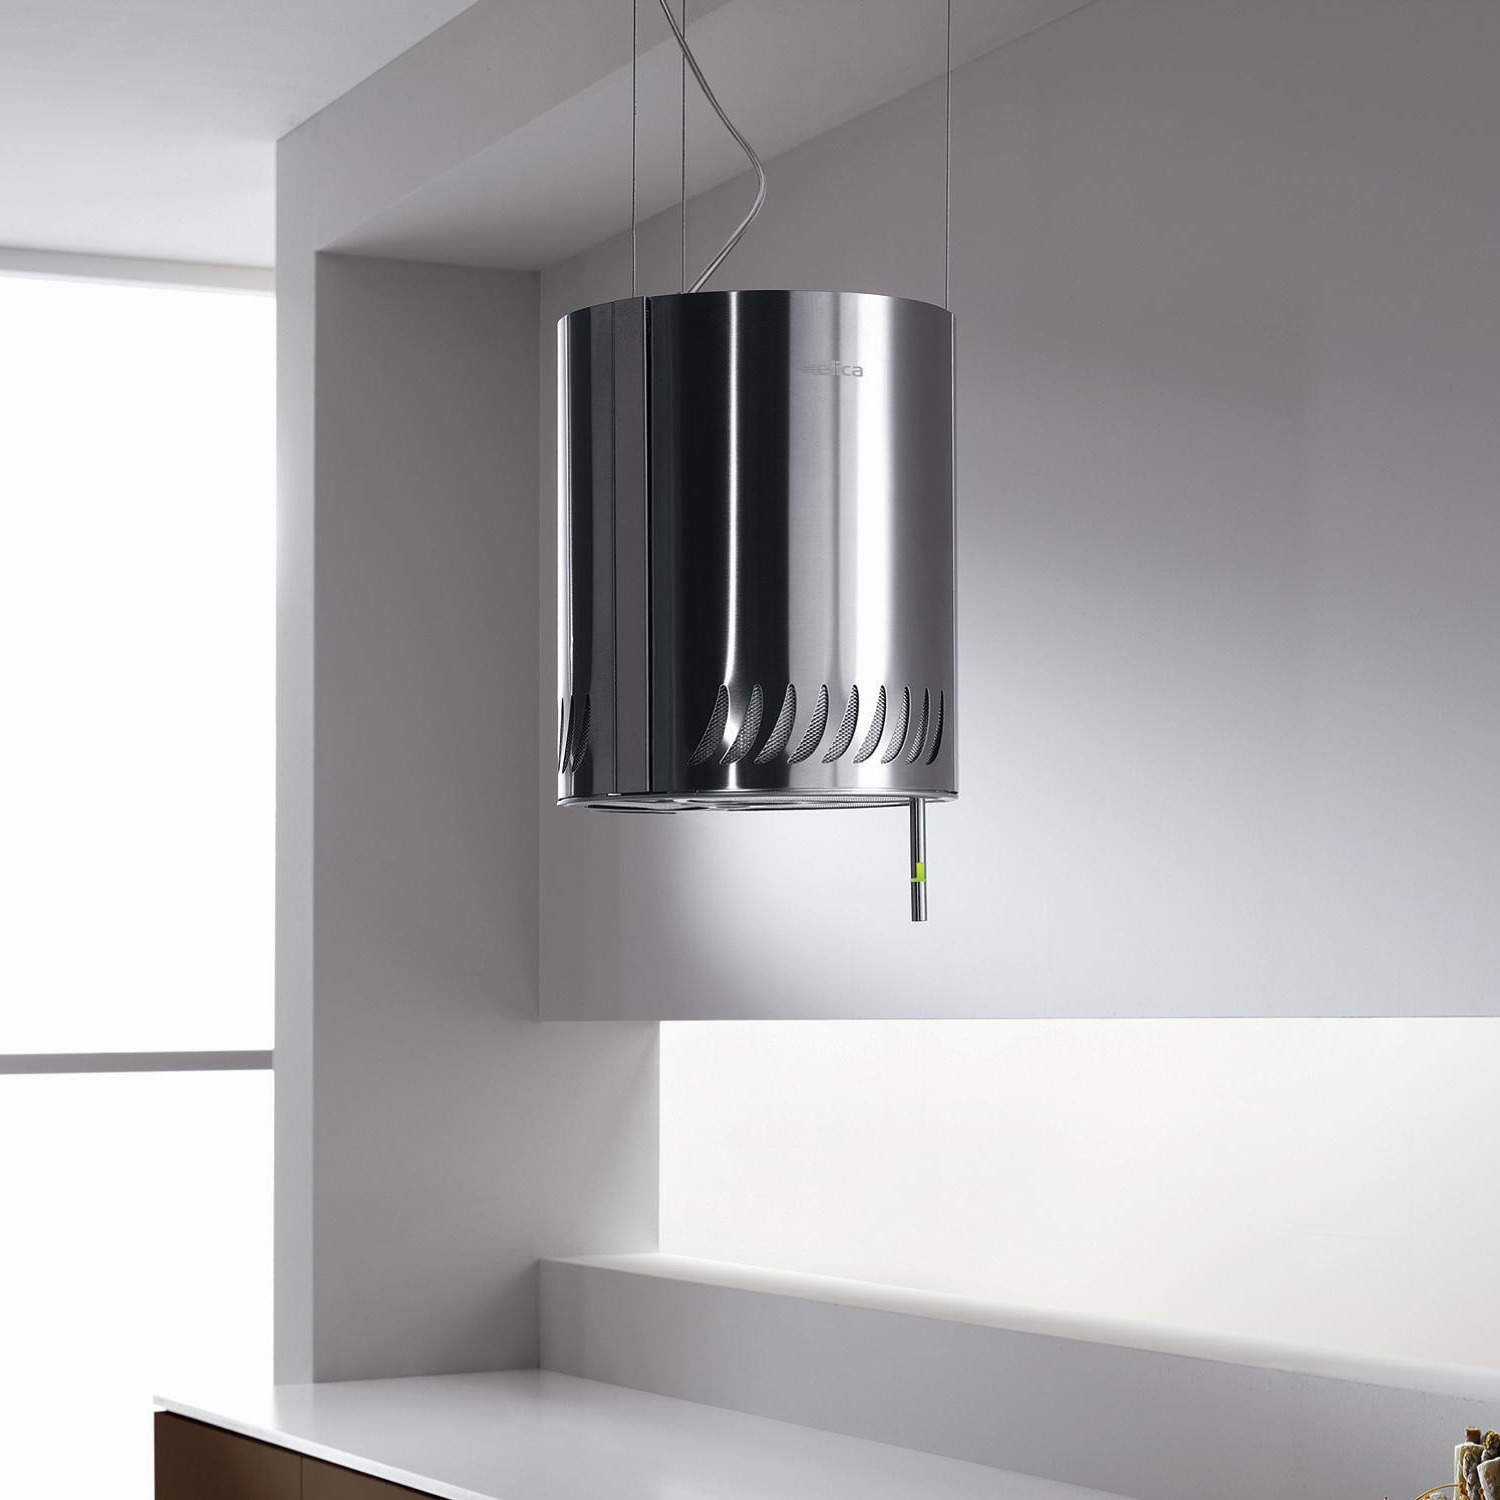 Elicia Cooker Hoods Elica Sienna Ceiling Mounted 248Mm Island Cooker Hood Stainless .